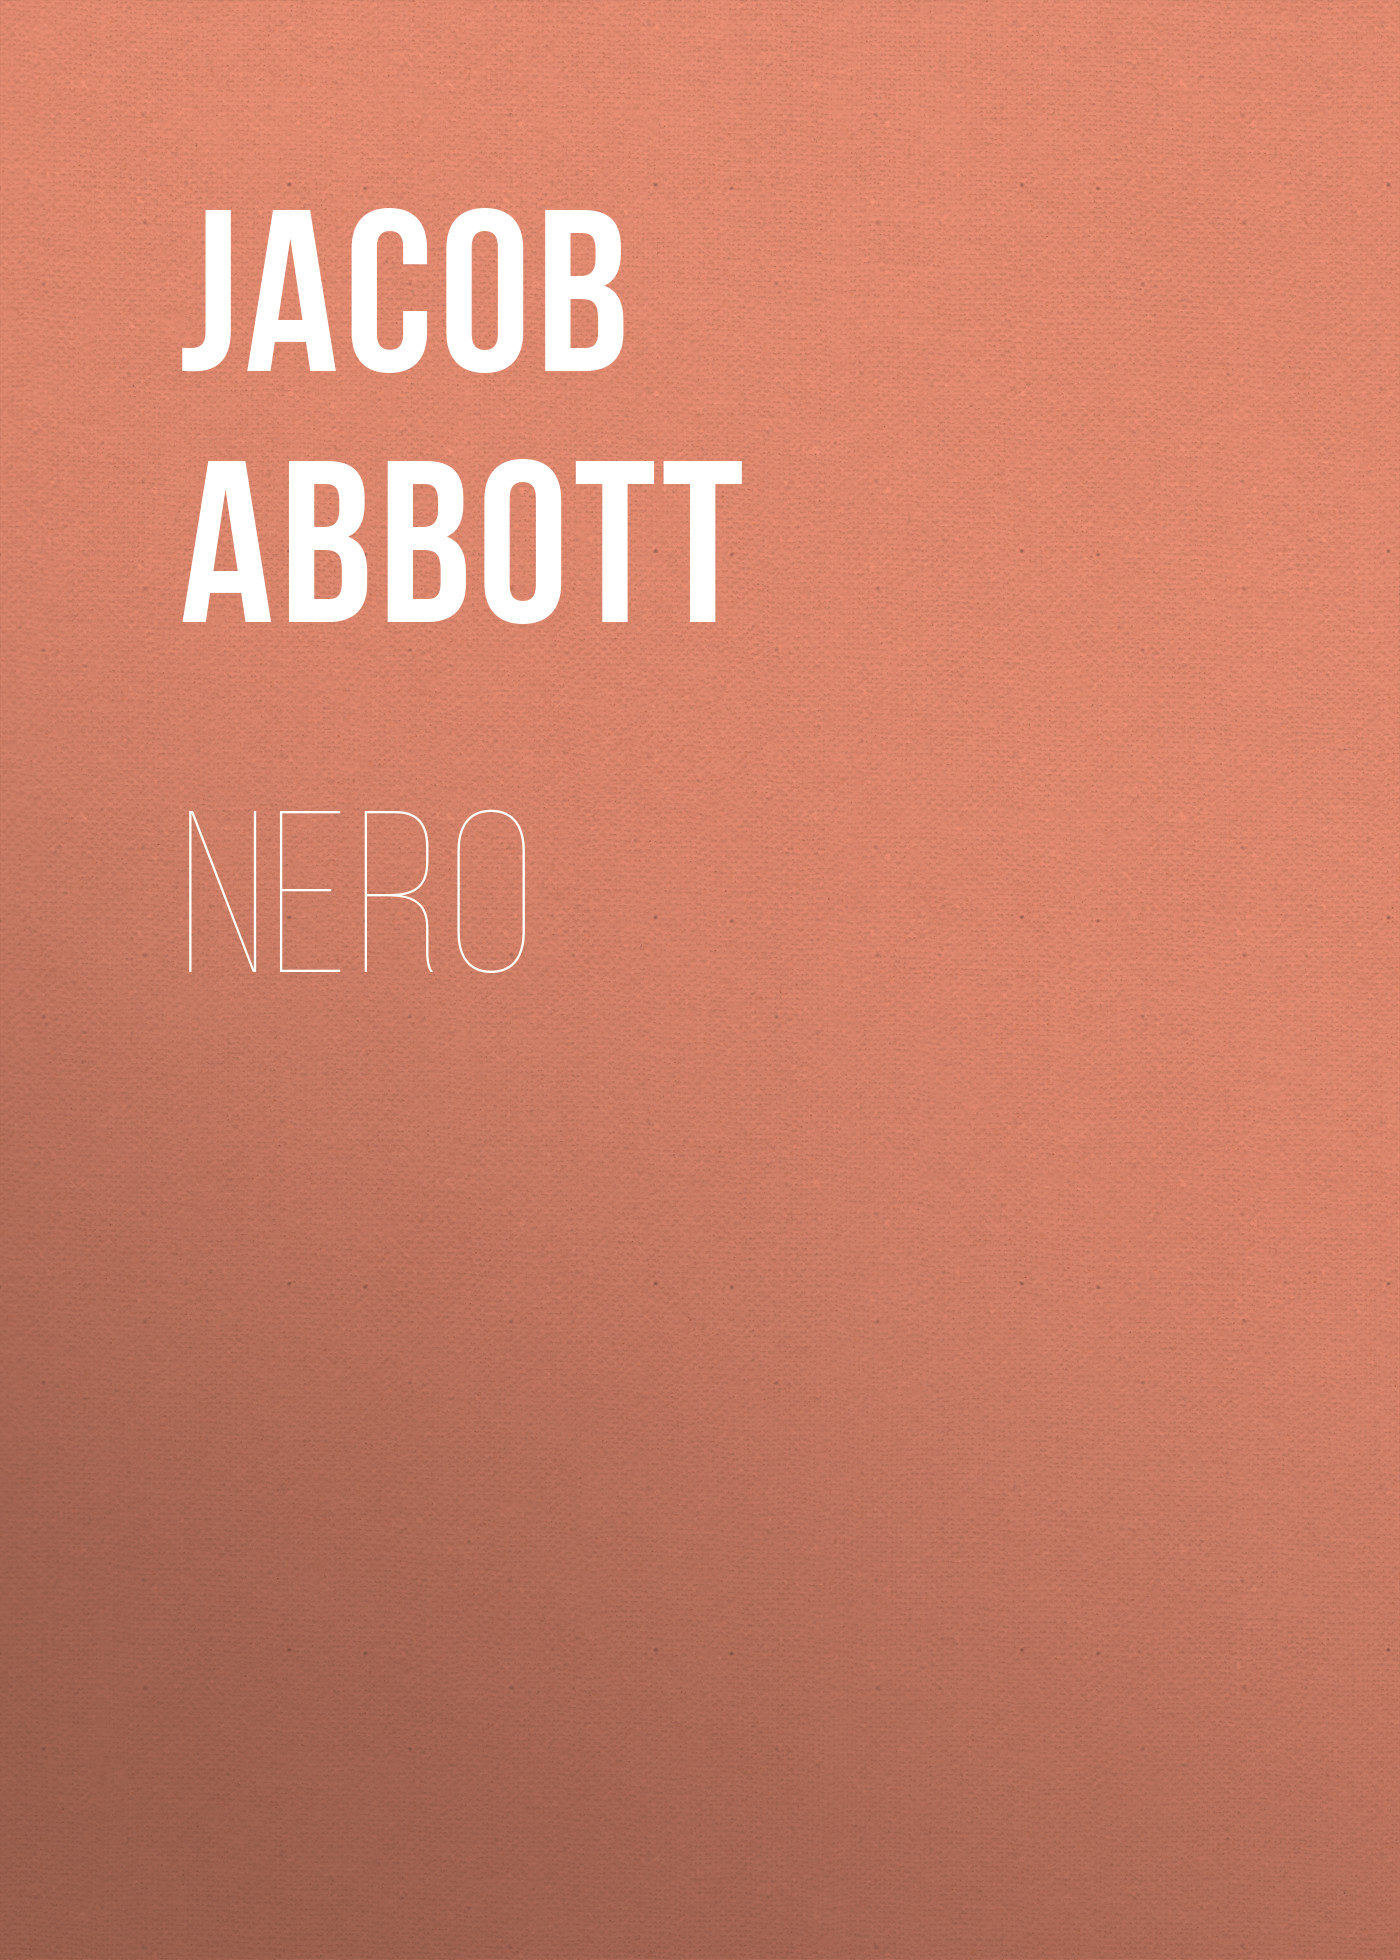 Abbott Jacob Nero abbott jacob nero